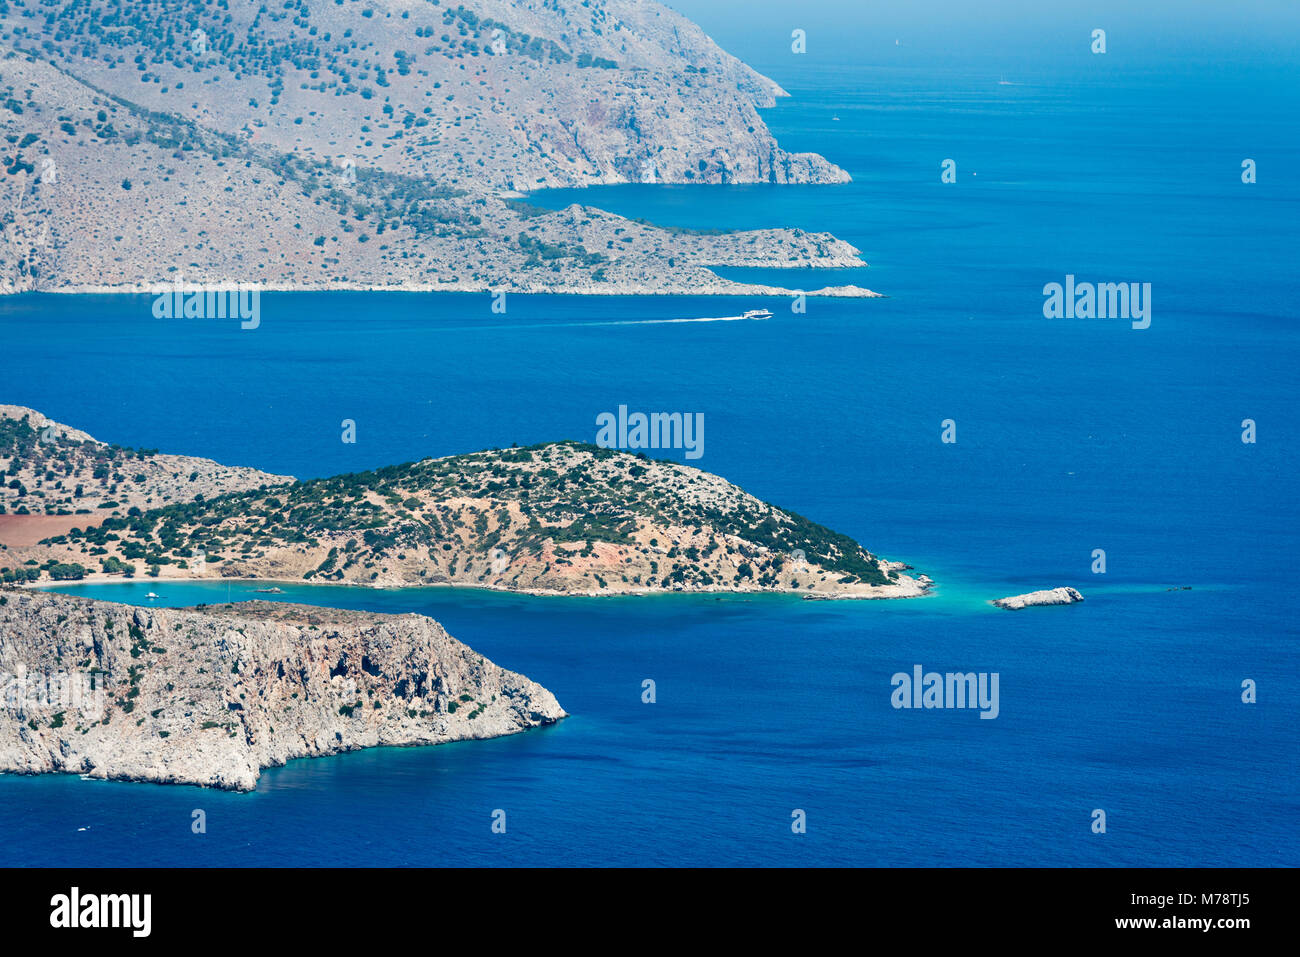 Aerial image of eastern Dodecanese Greek islands Koulondros, Seskli and Xisos in the Mediterranean Sea Stock Photo